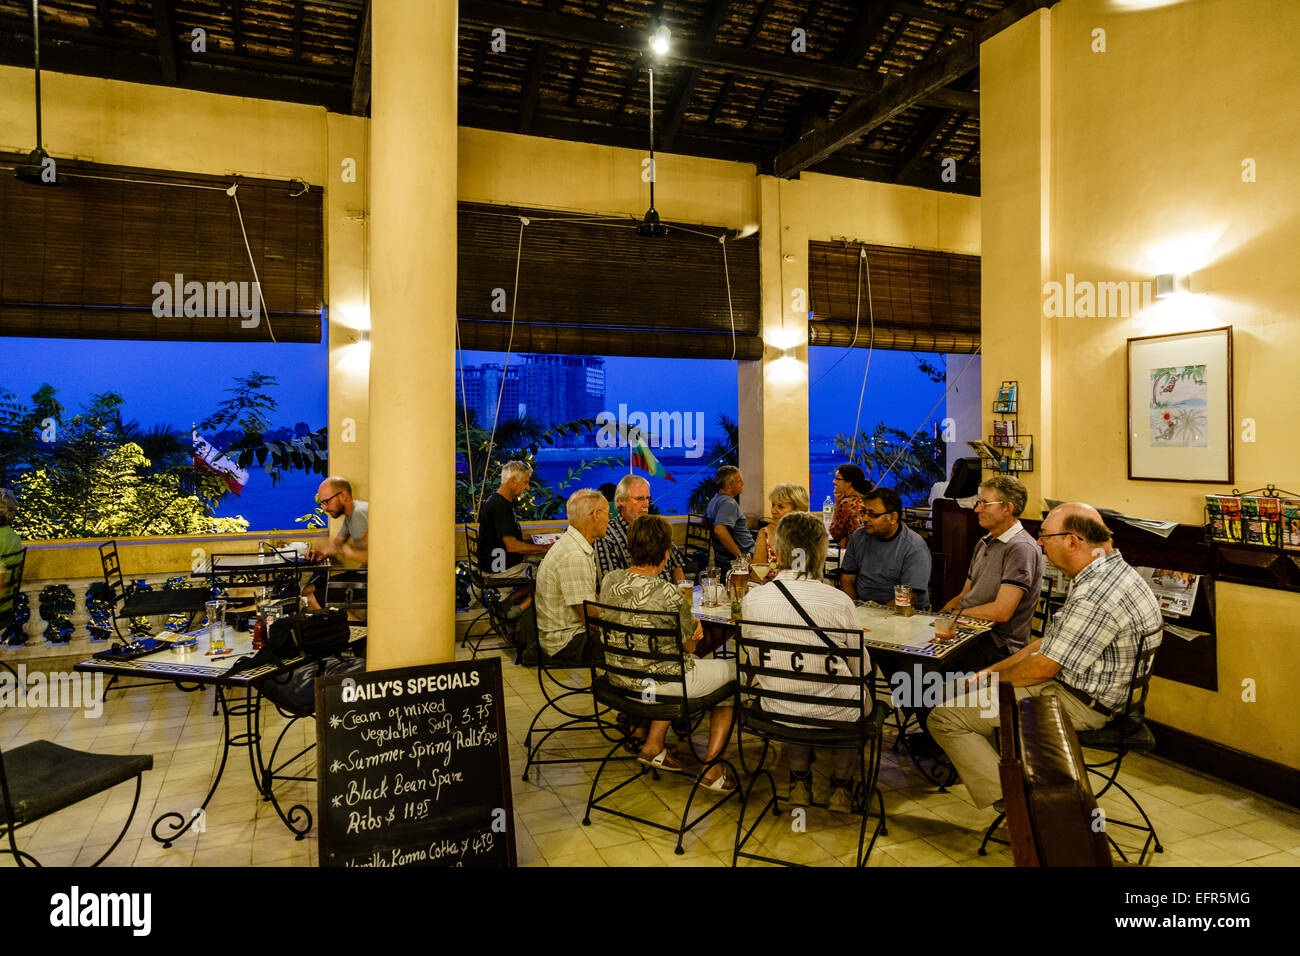 People sitting at the The FCC, Foreign Correspondents Club bar and restaurant, Phnom Penh, Cambodia. - Stock Image